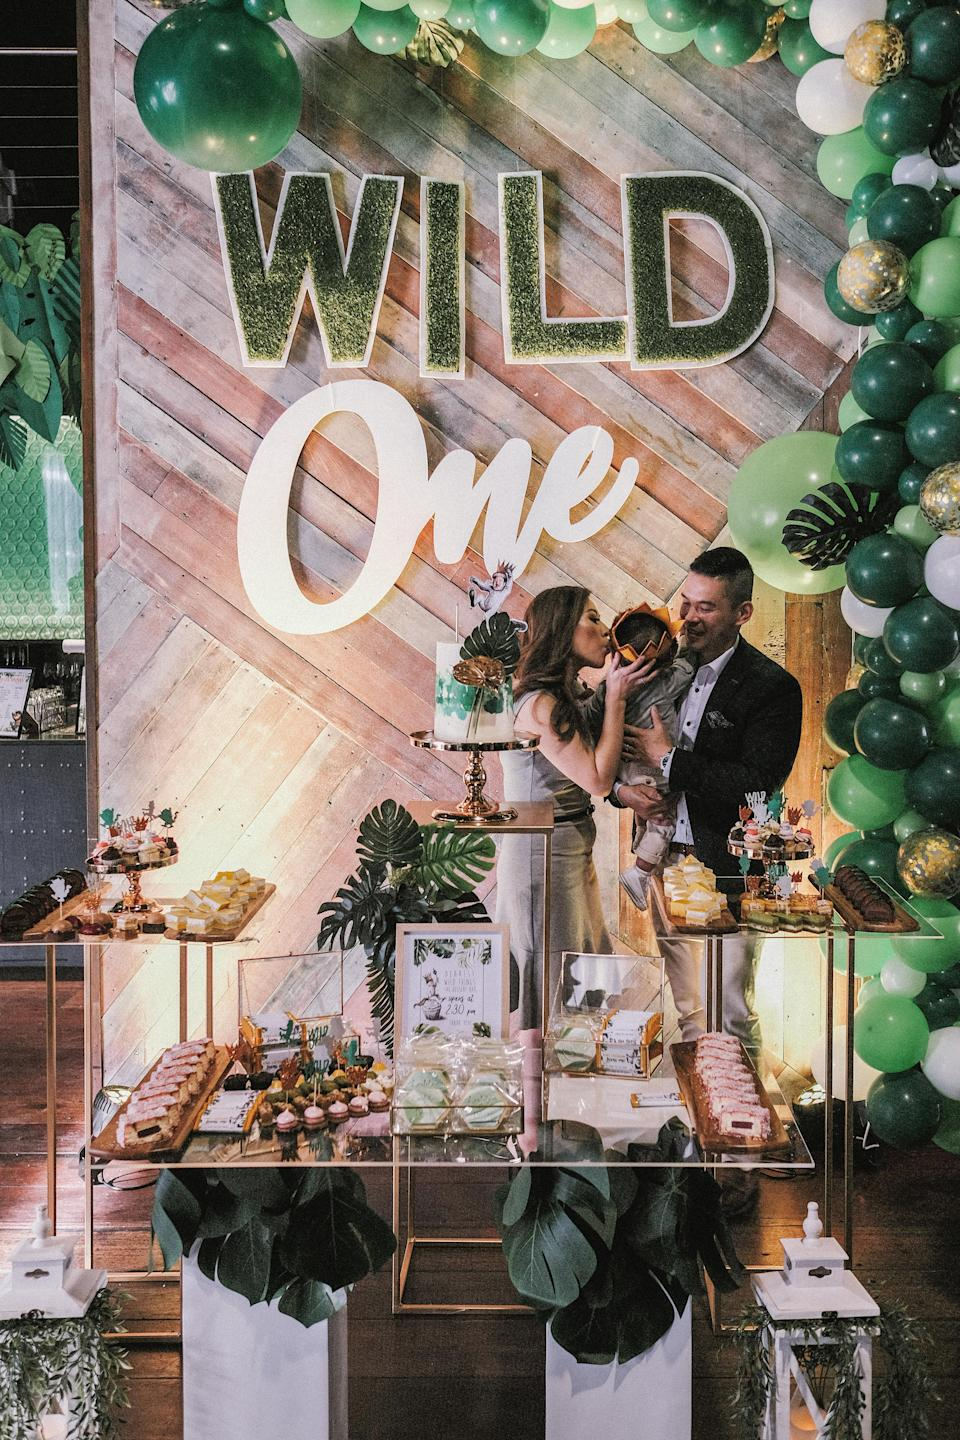 """Jackie Lam has admitted she went """"over the top"""" with her son's first birthday, spending $13 on a stunning party.Source: Supplied/JackieLam"""